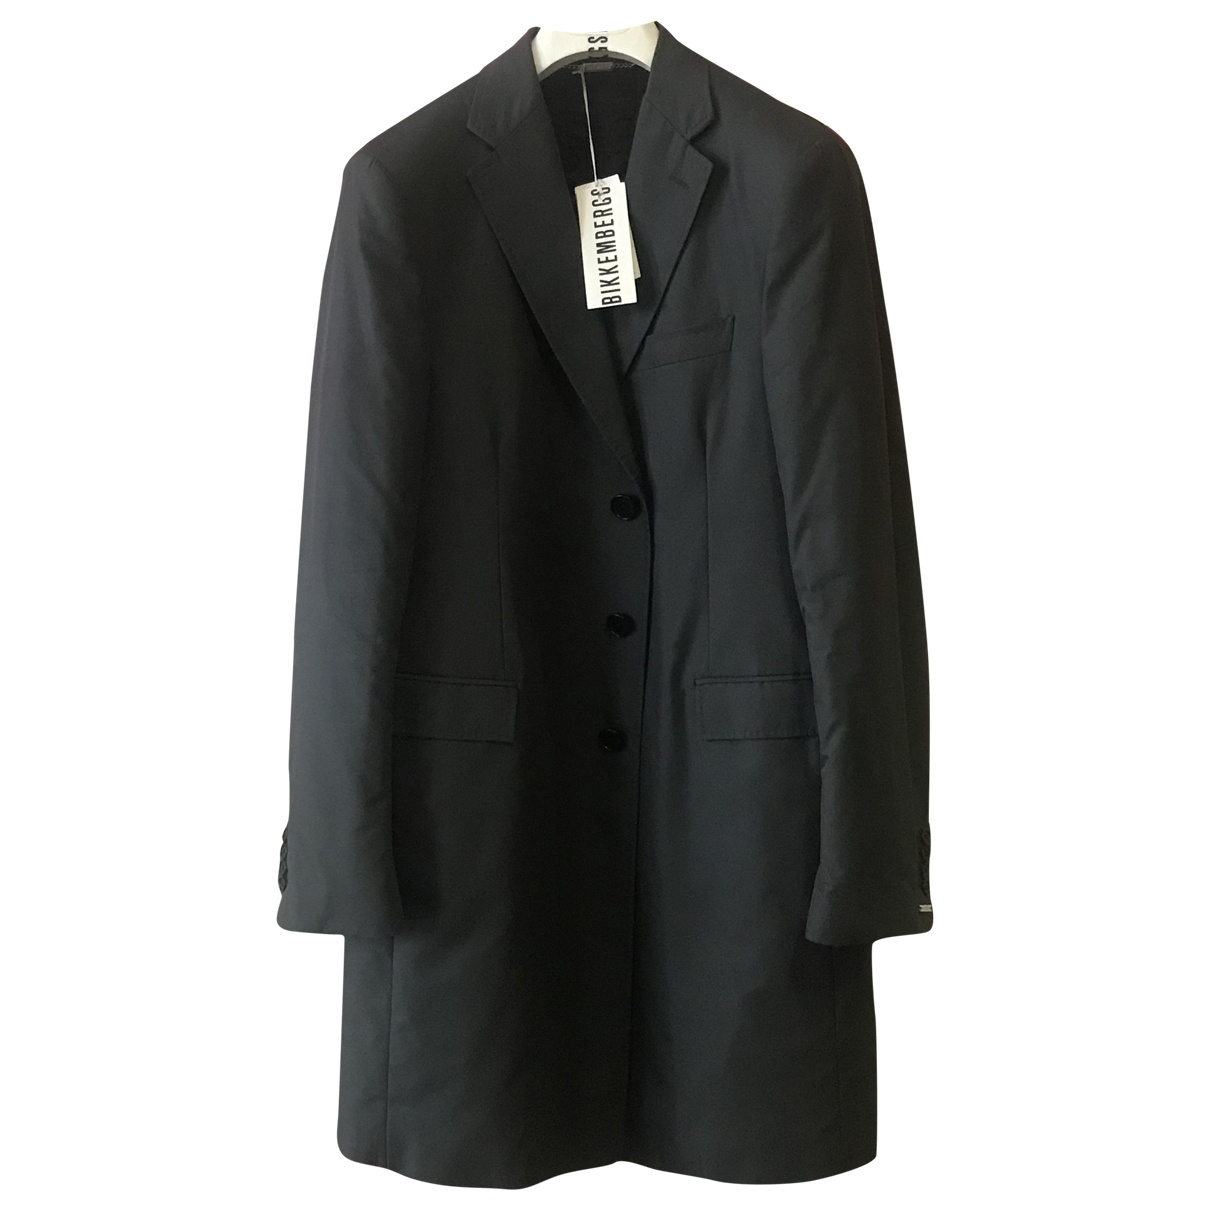 Dirk Bikkembergs \N Black Cotton jacket  for Men 52 IT